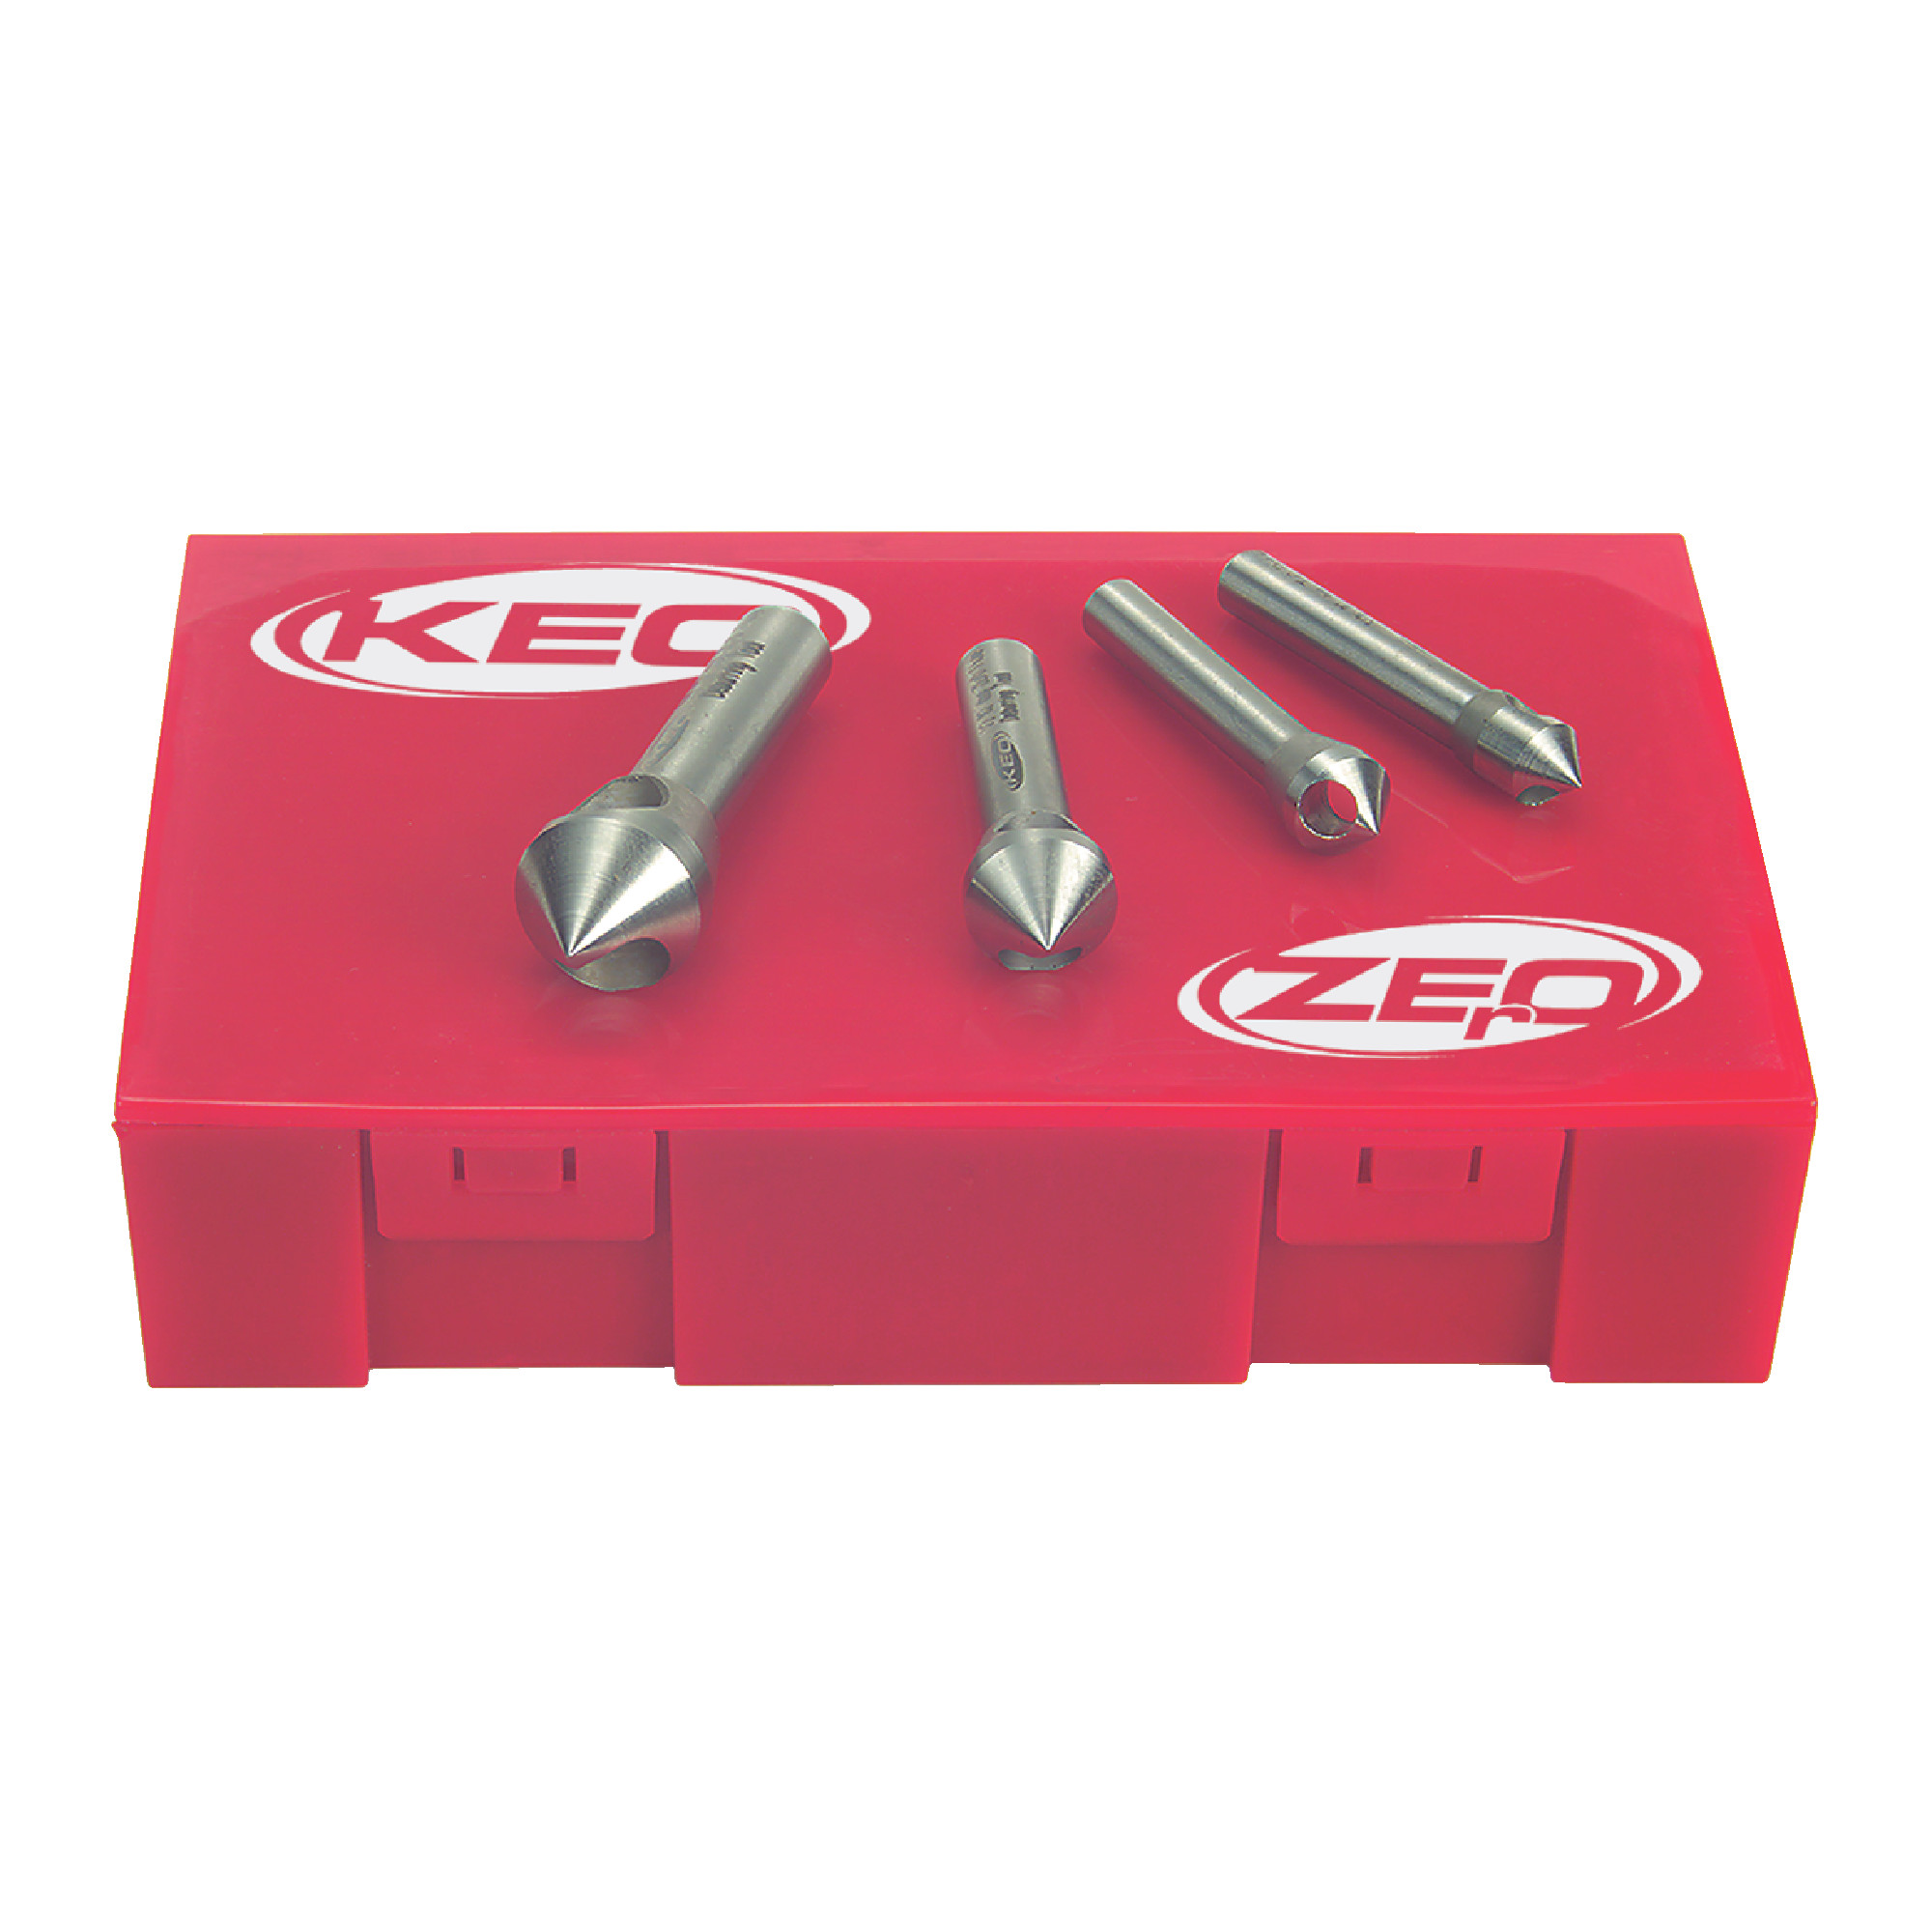 """KEO 0 Flute 4 Piece 5/16"""" to 5/8"""" M35 5% Cobalt 82° Included Angle Countersink Set"""